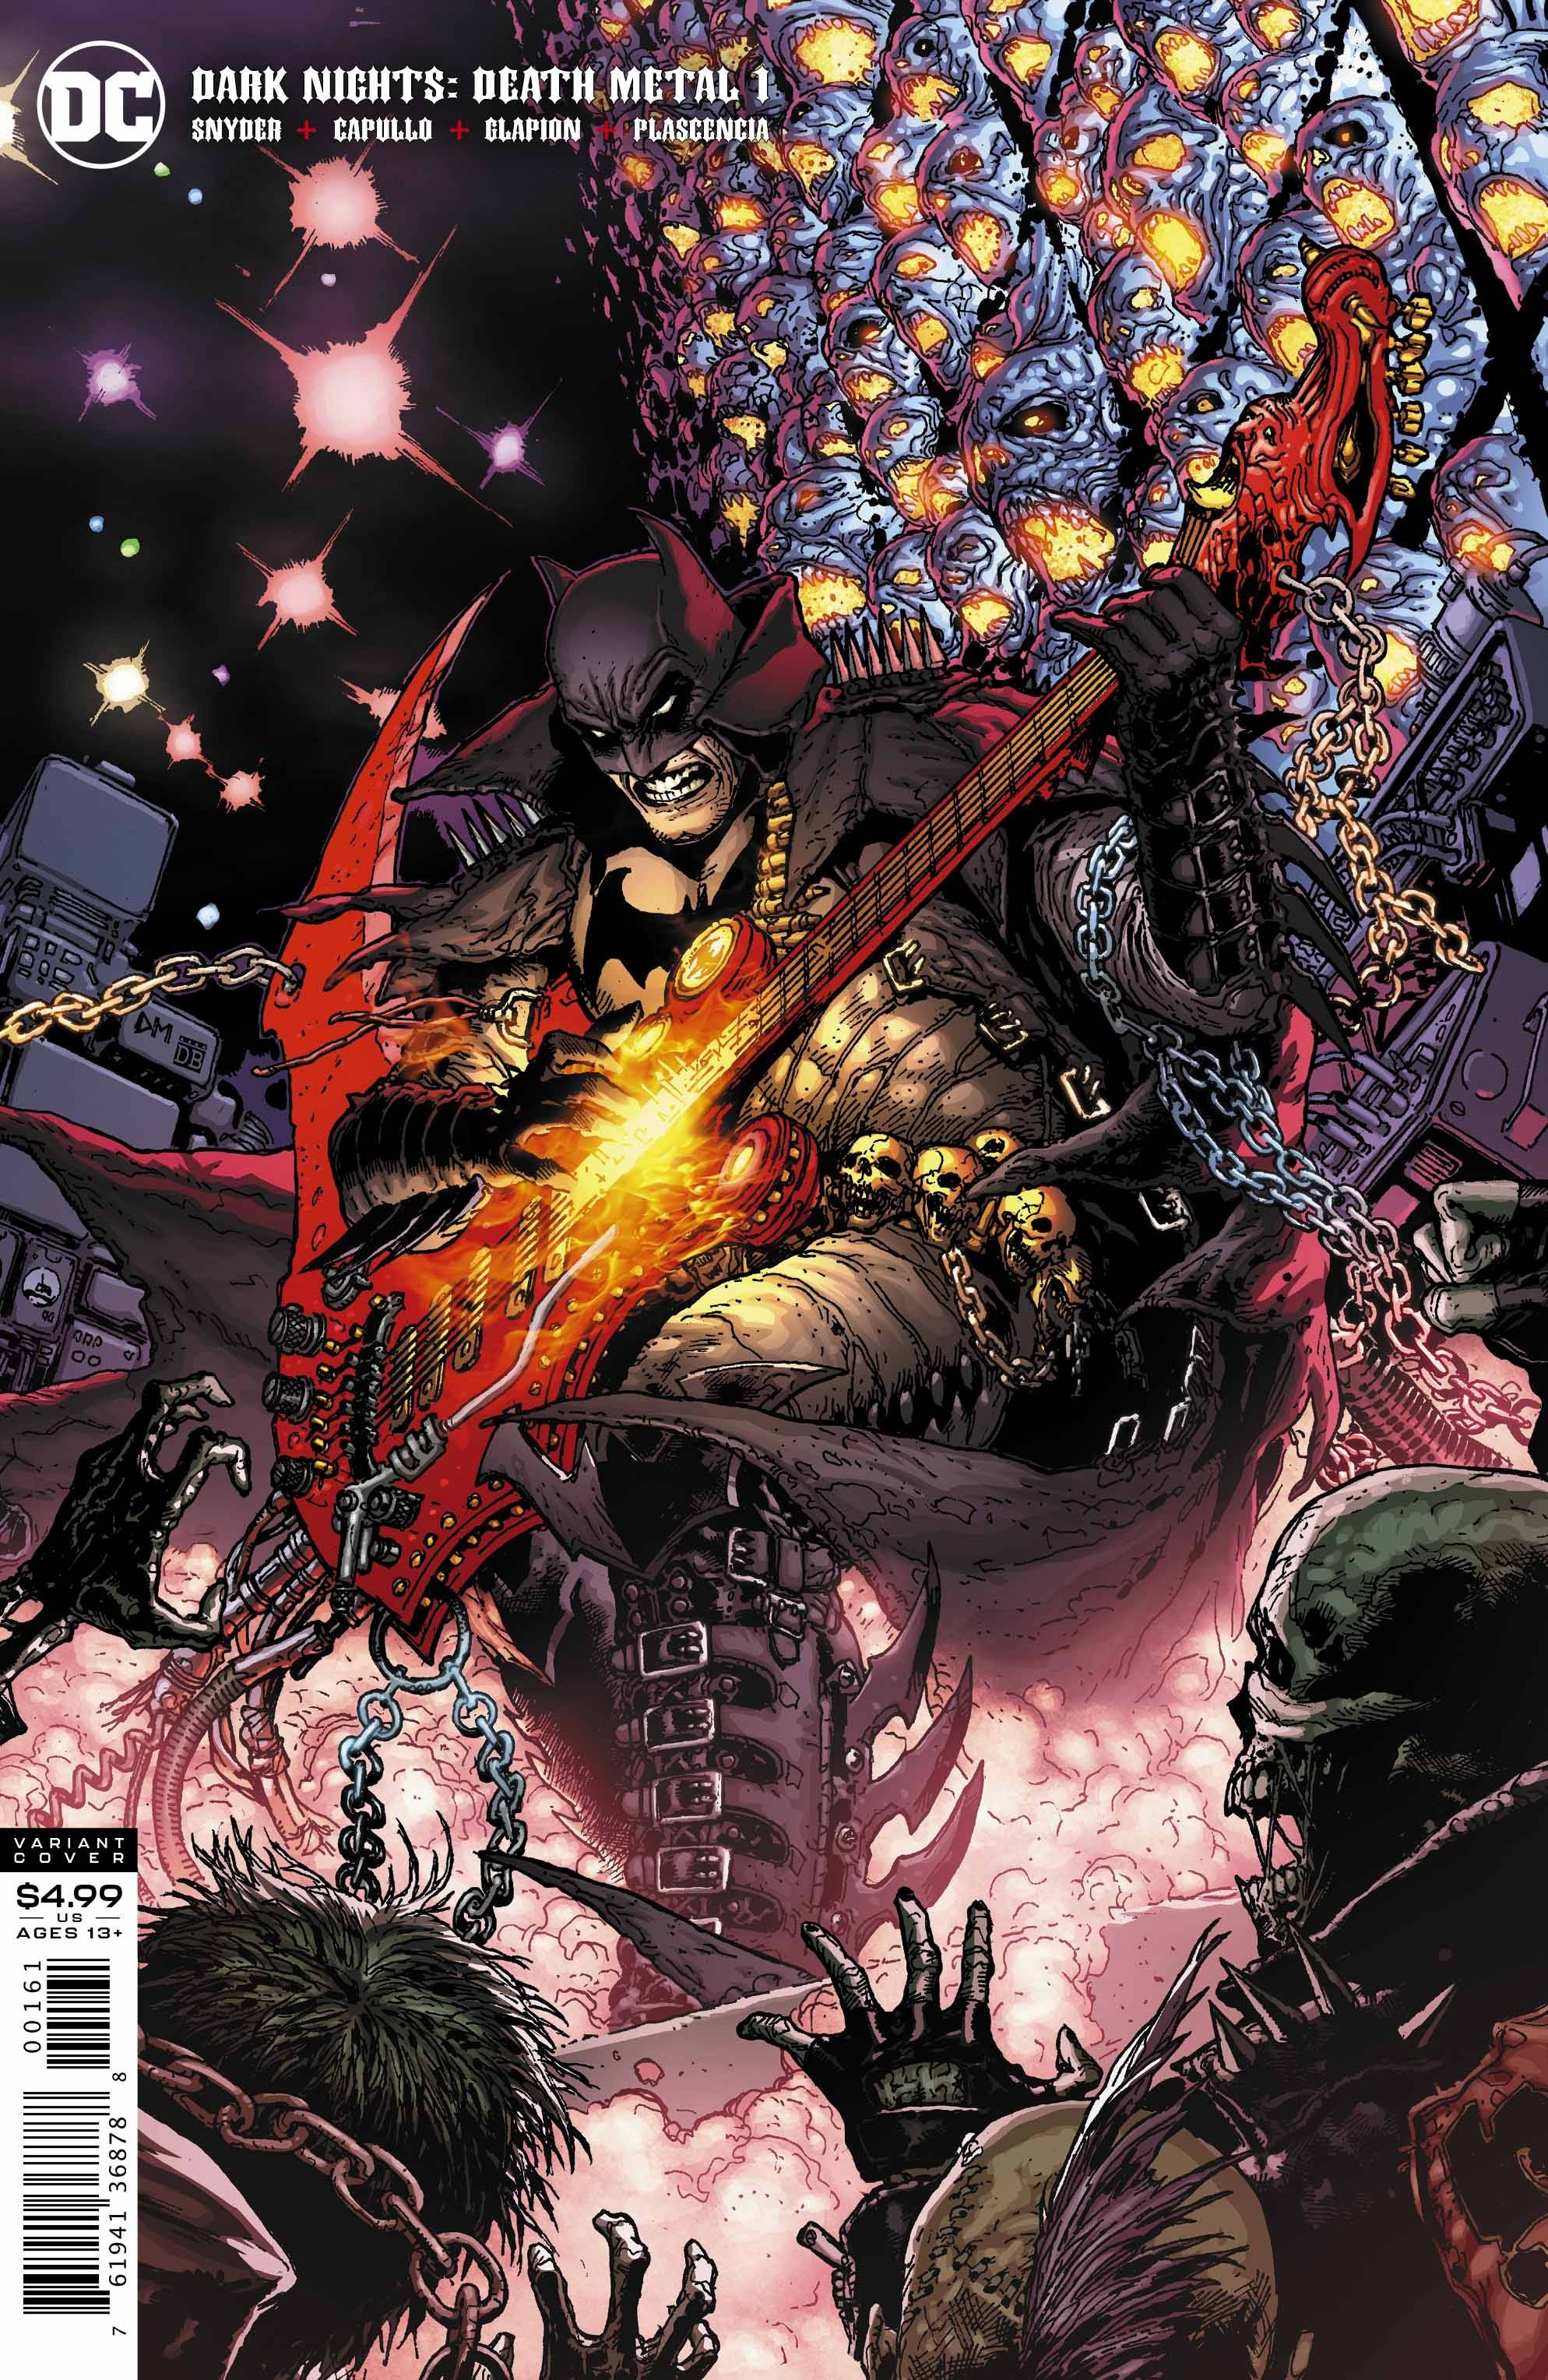 DARK NIGHTS DEATH METAL #1 (OF 6) 1 25 DOUG MAHNKE VAR ED